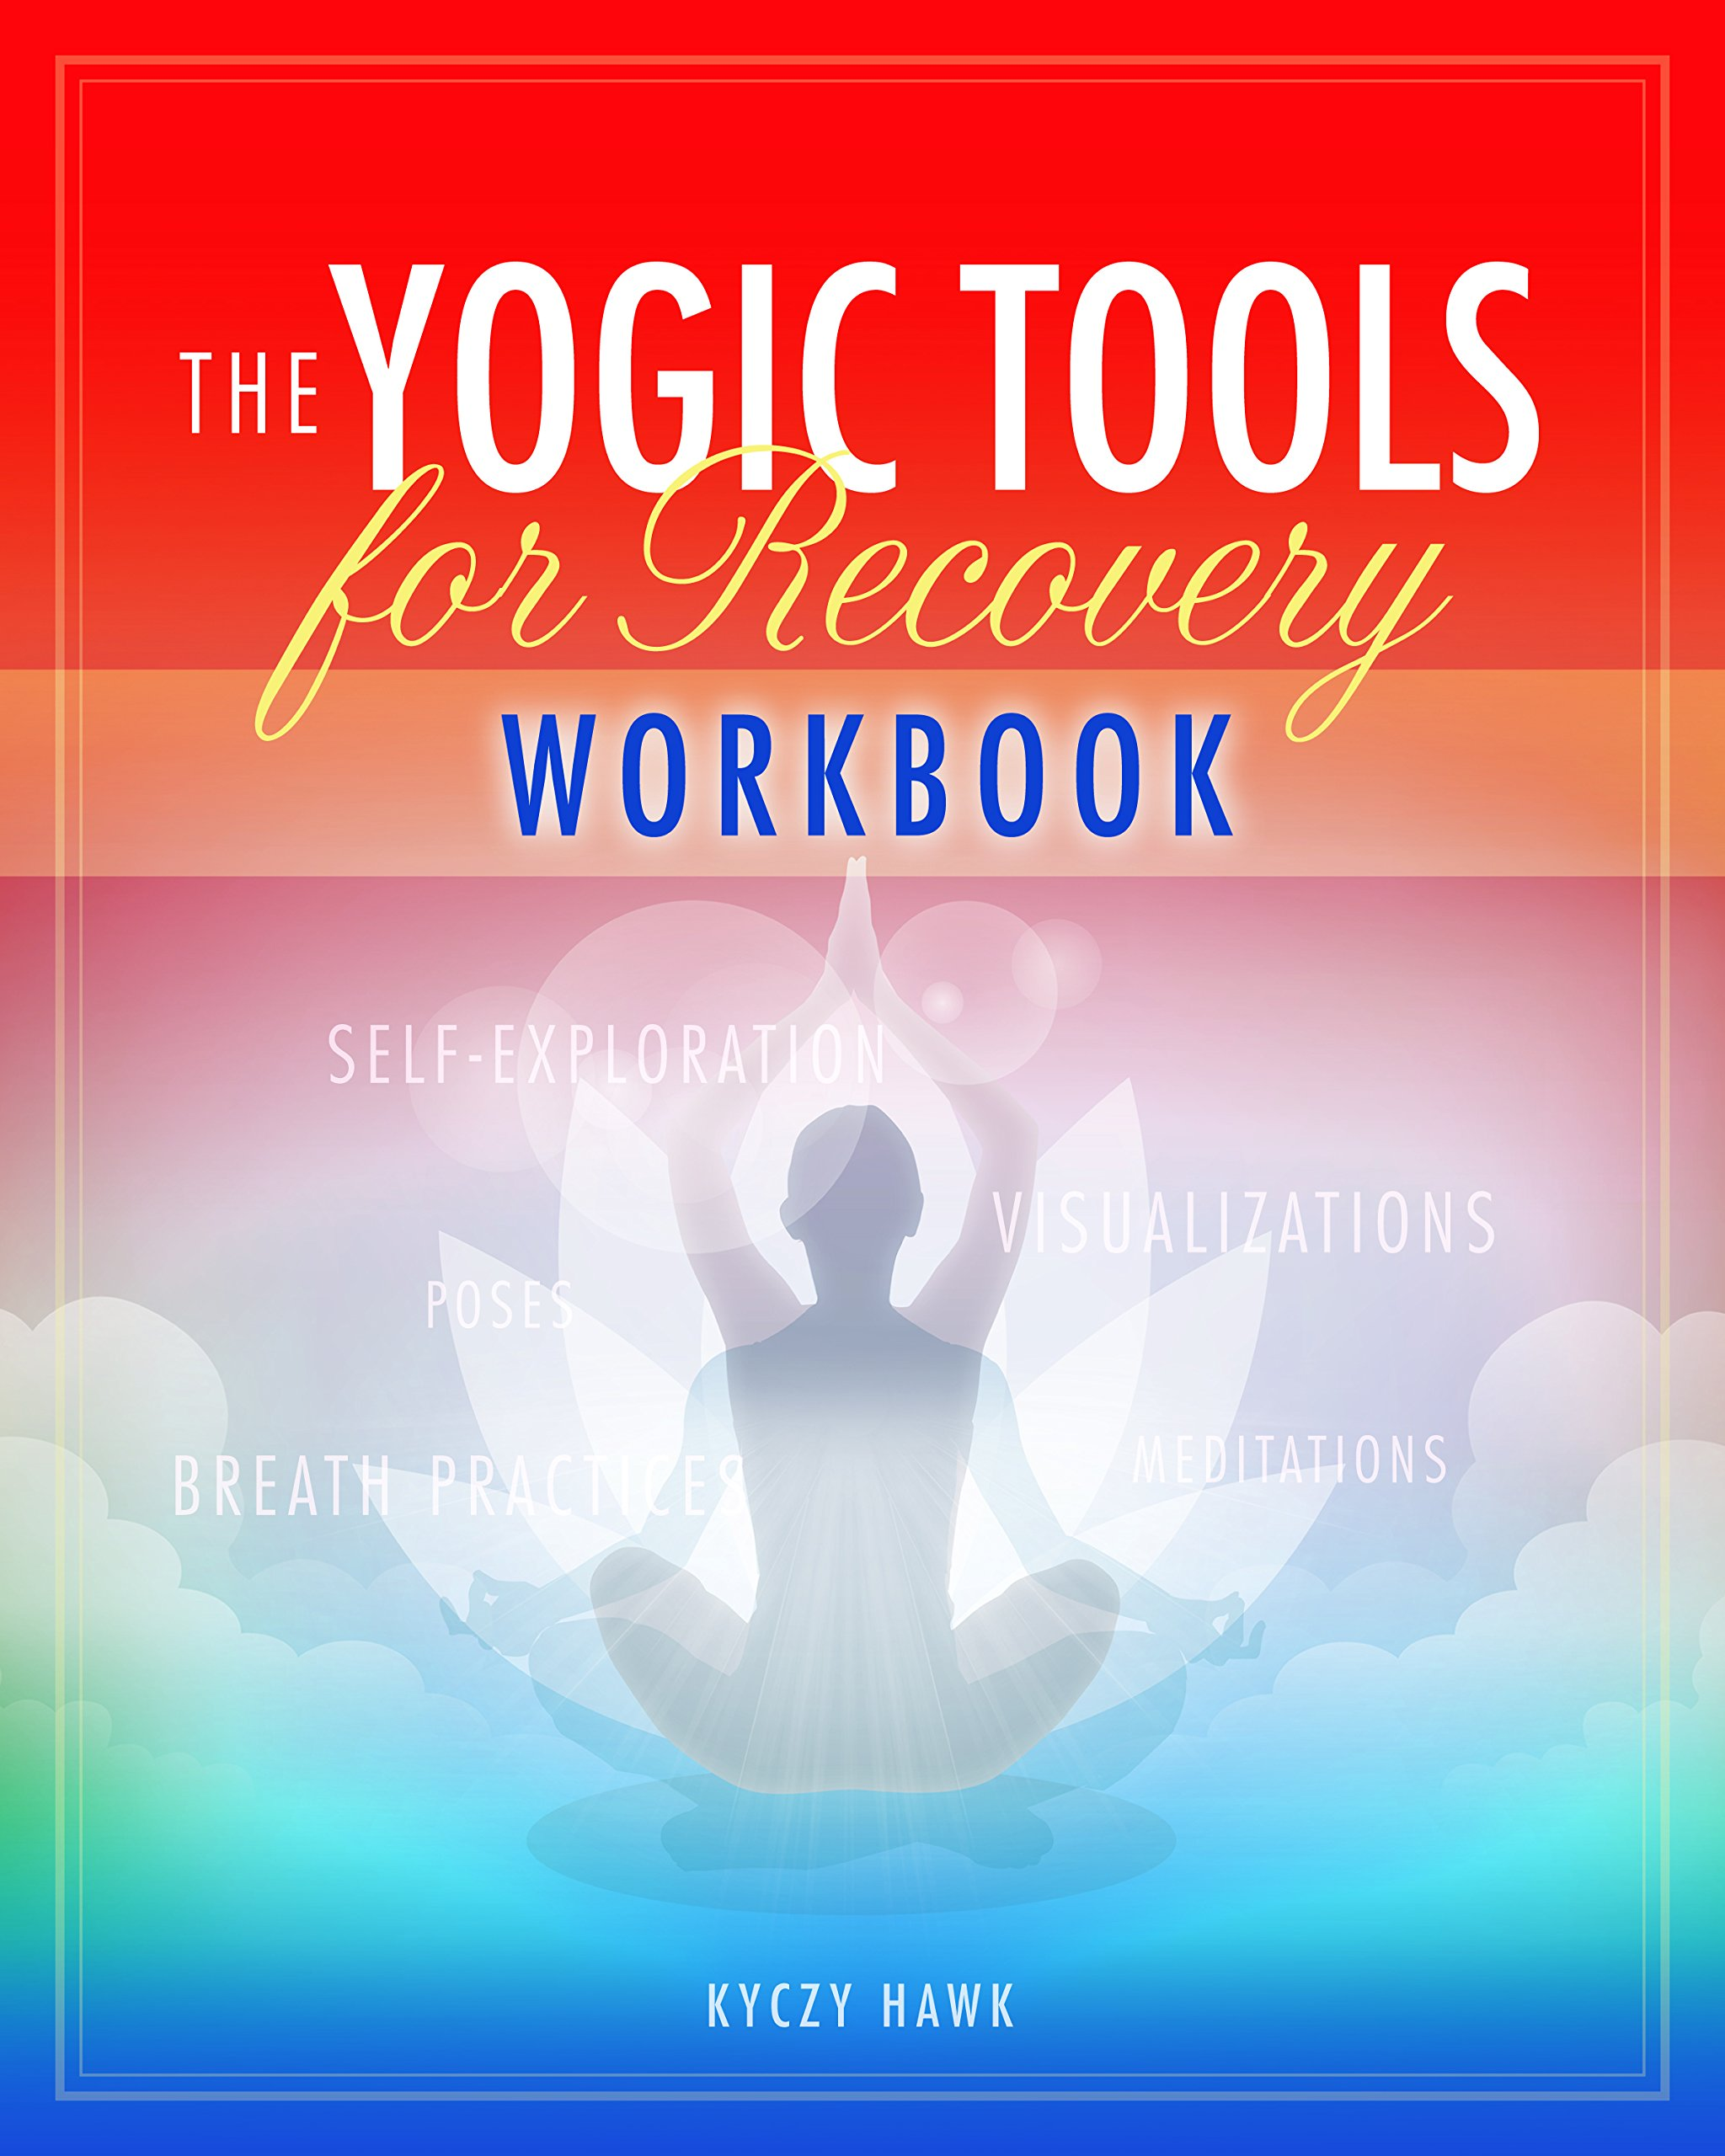 The Yogic Tools Workbook PDF